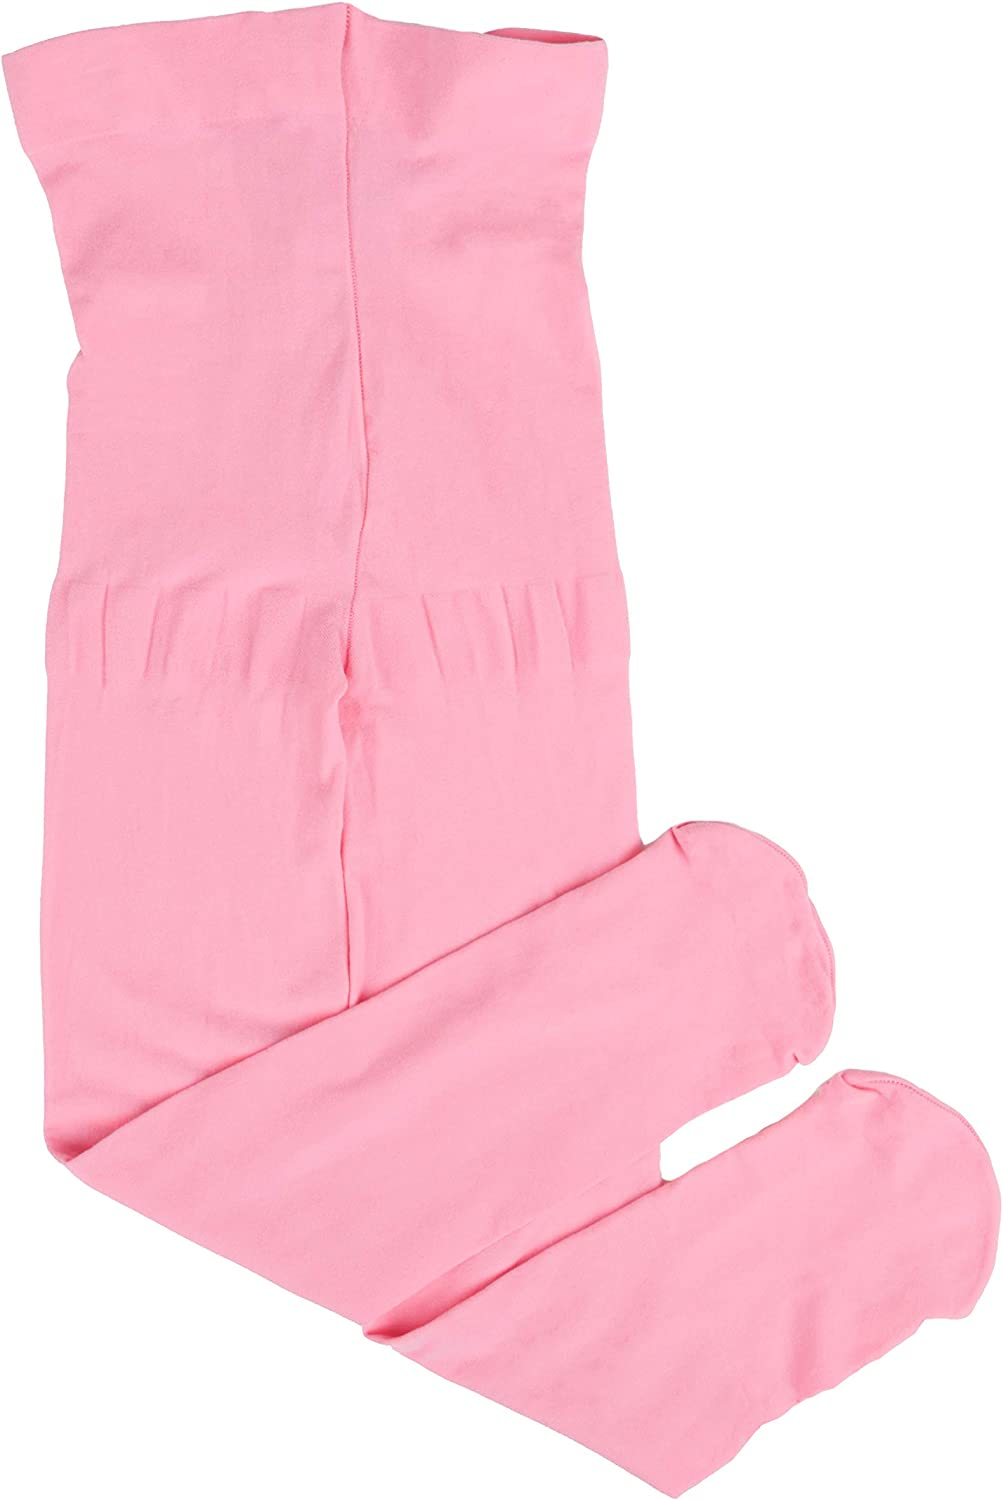 Leveret Girls Tights Baby//Toddler//Big Girls Variety if Colors Size 6 Months-14 Years